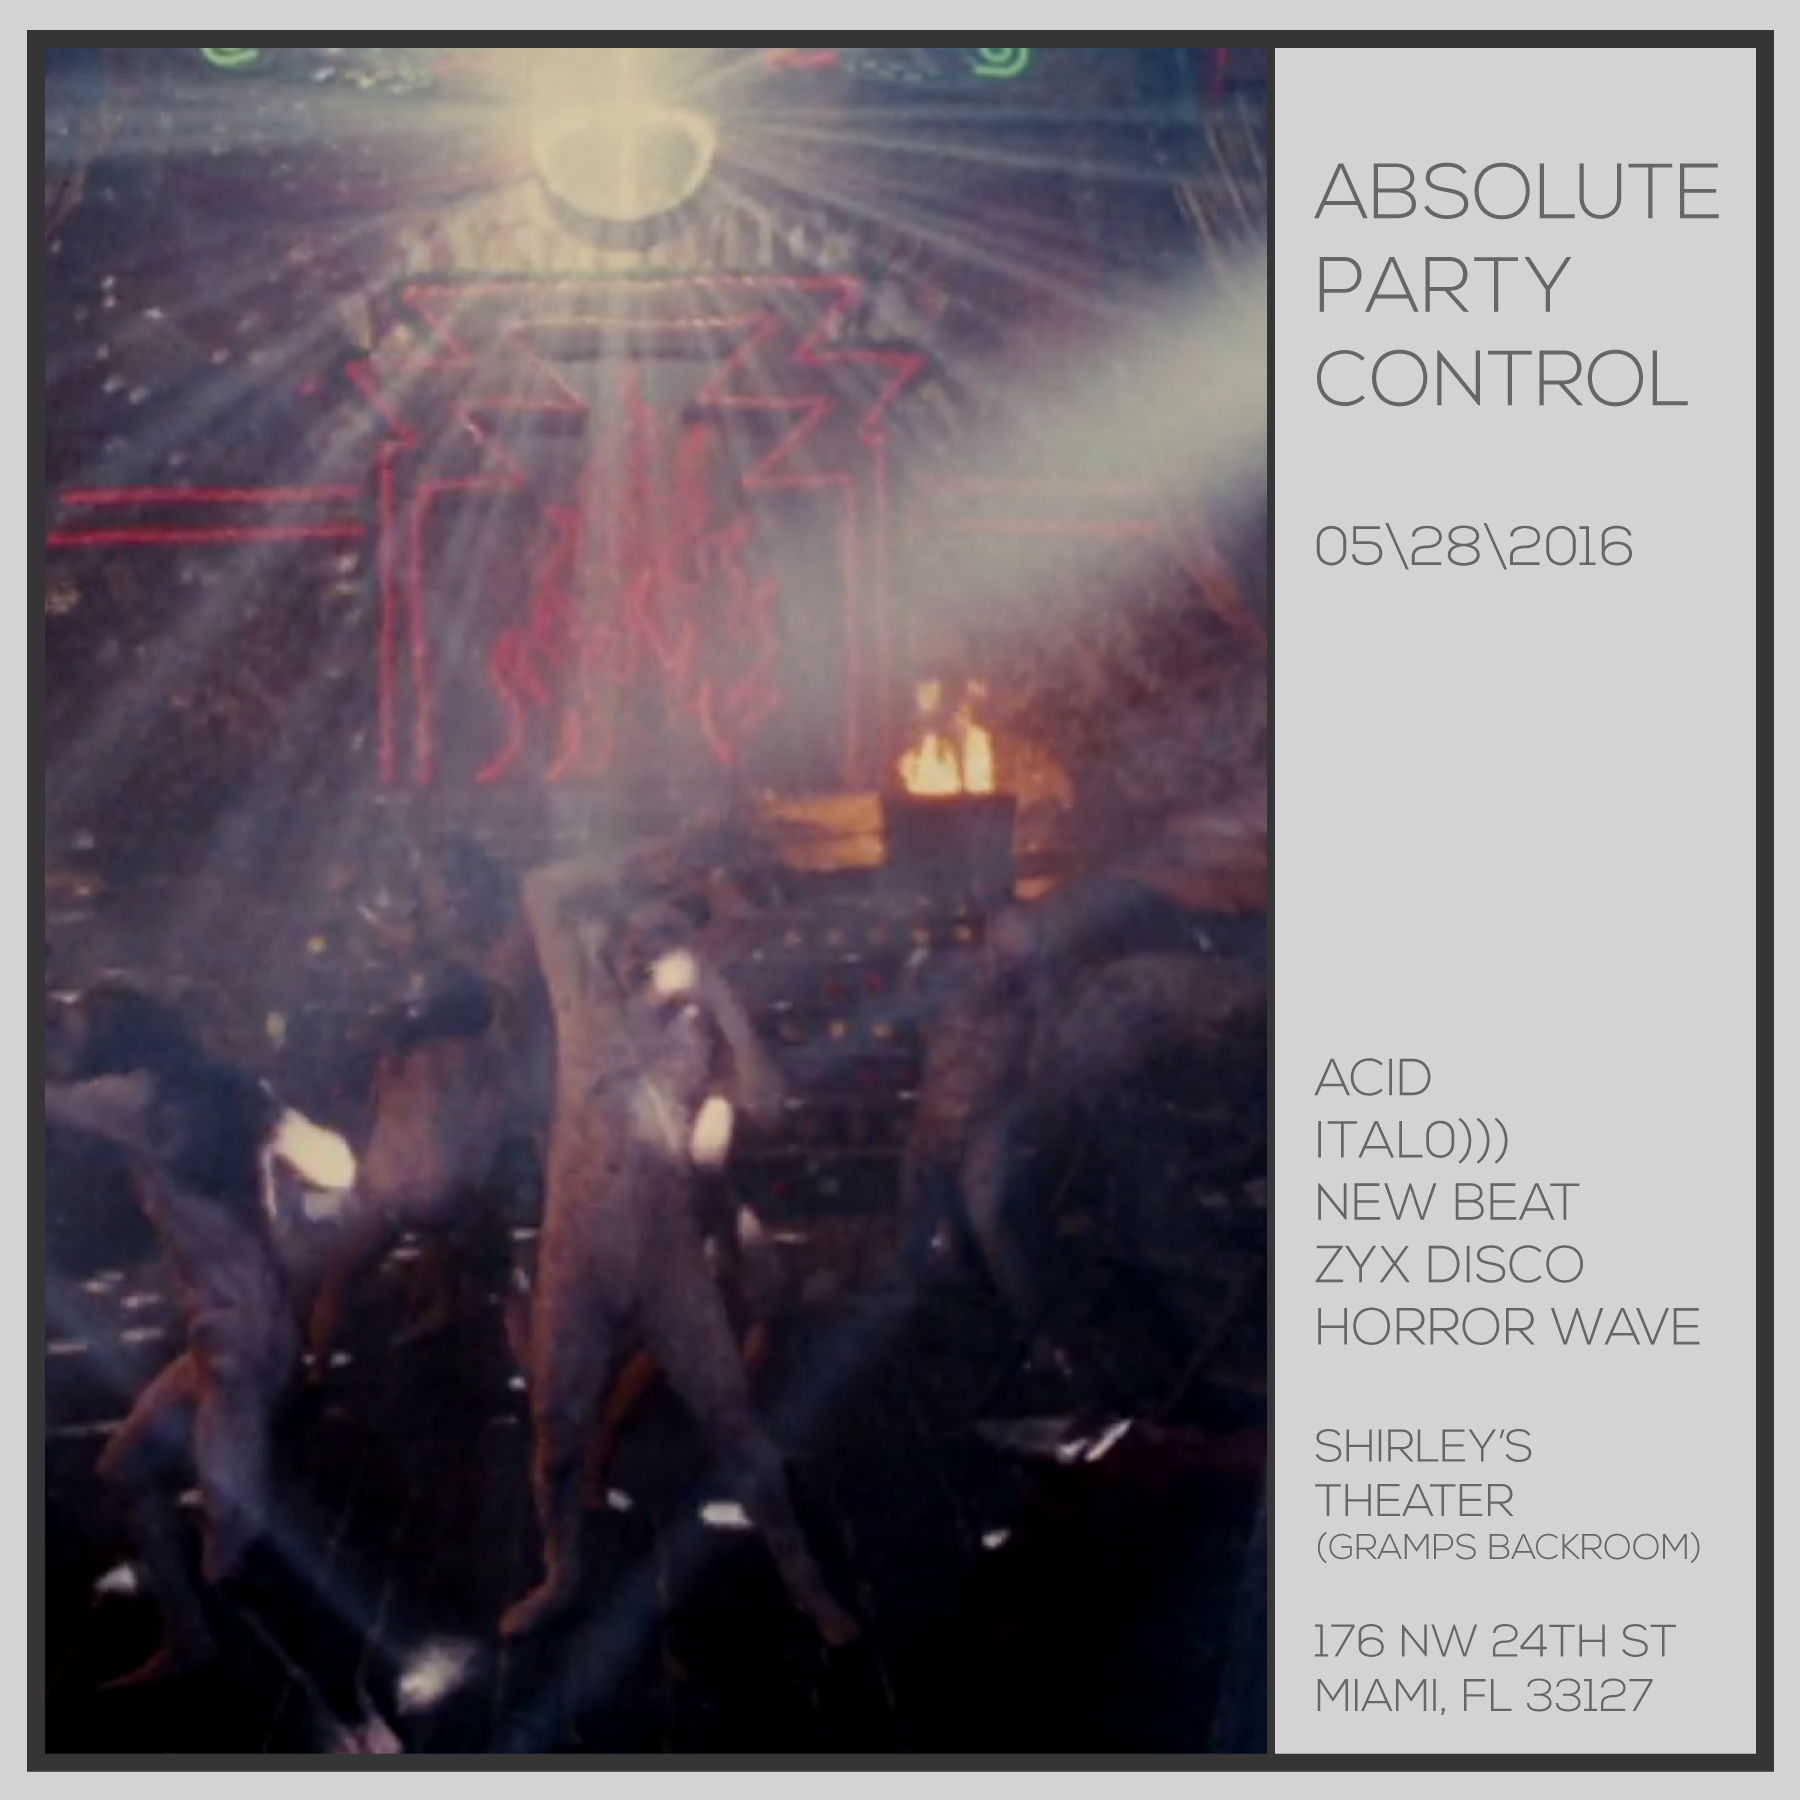 003-05-28-2016-Absolute-Party-Control